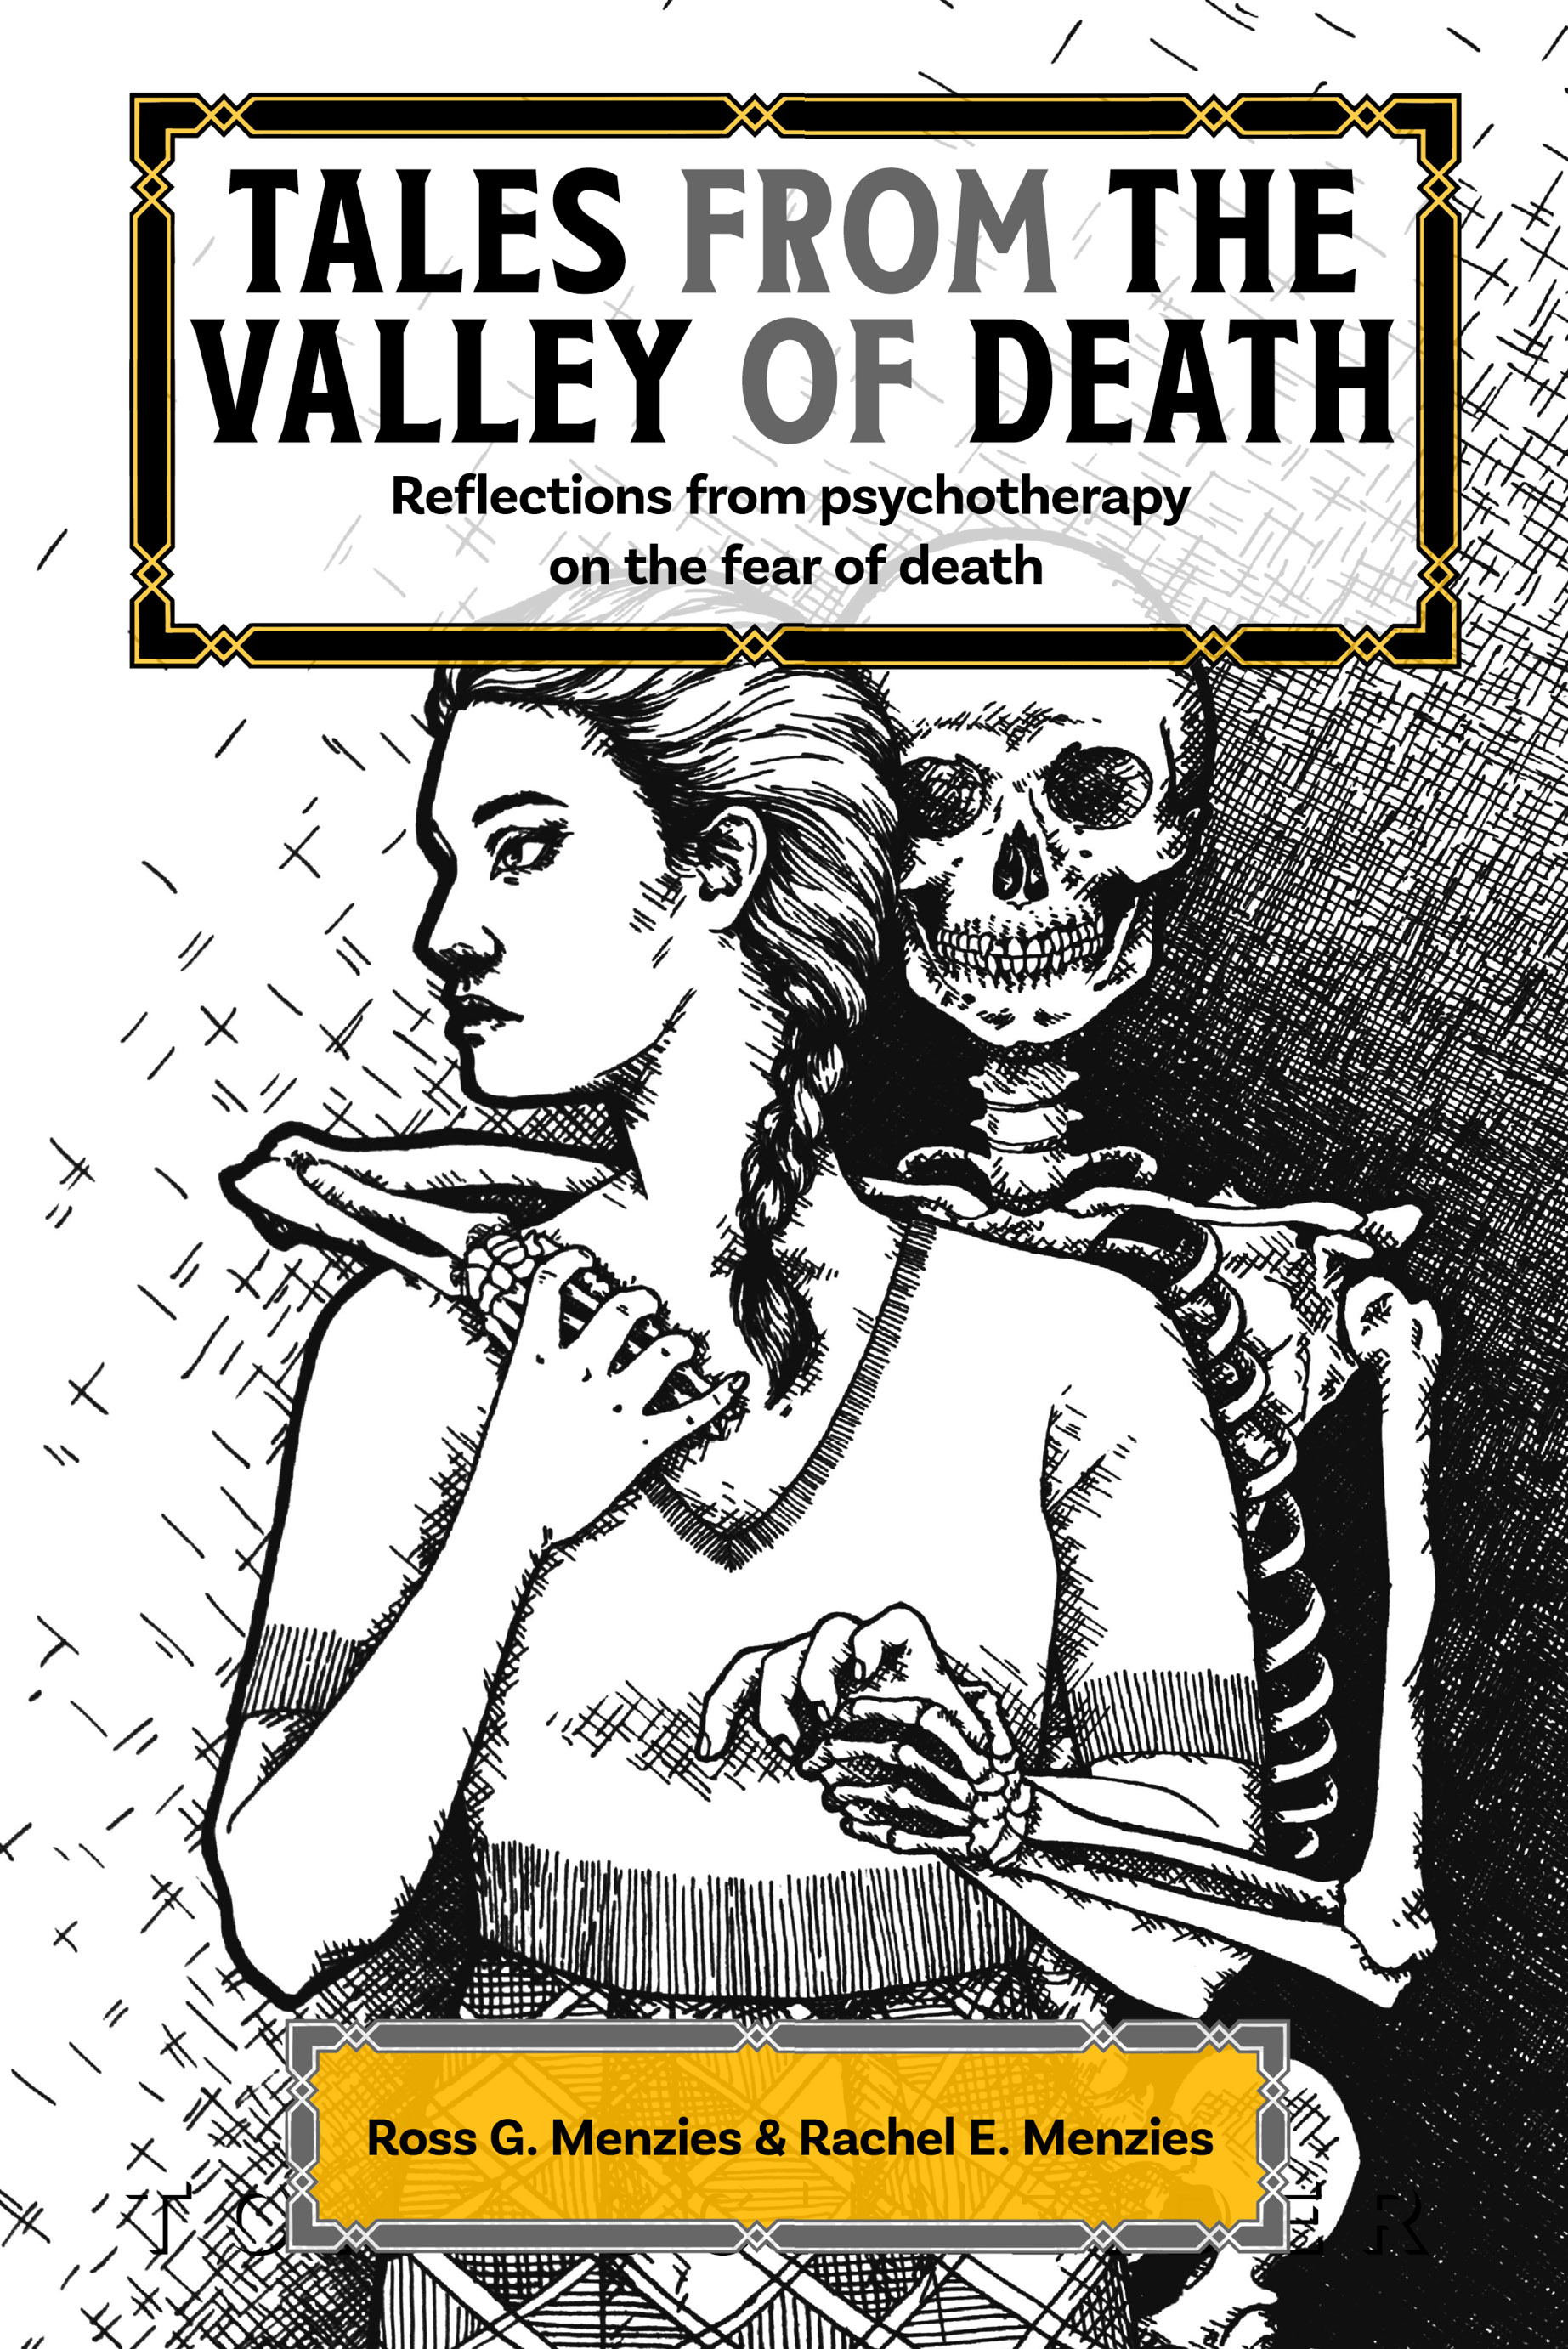 Tales from the Valley of Death_cover_AAP_front.jpg